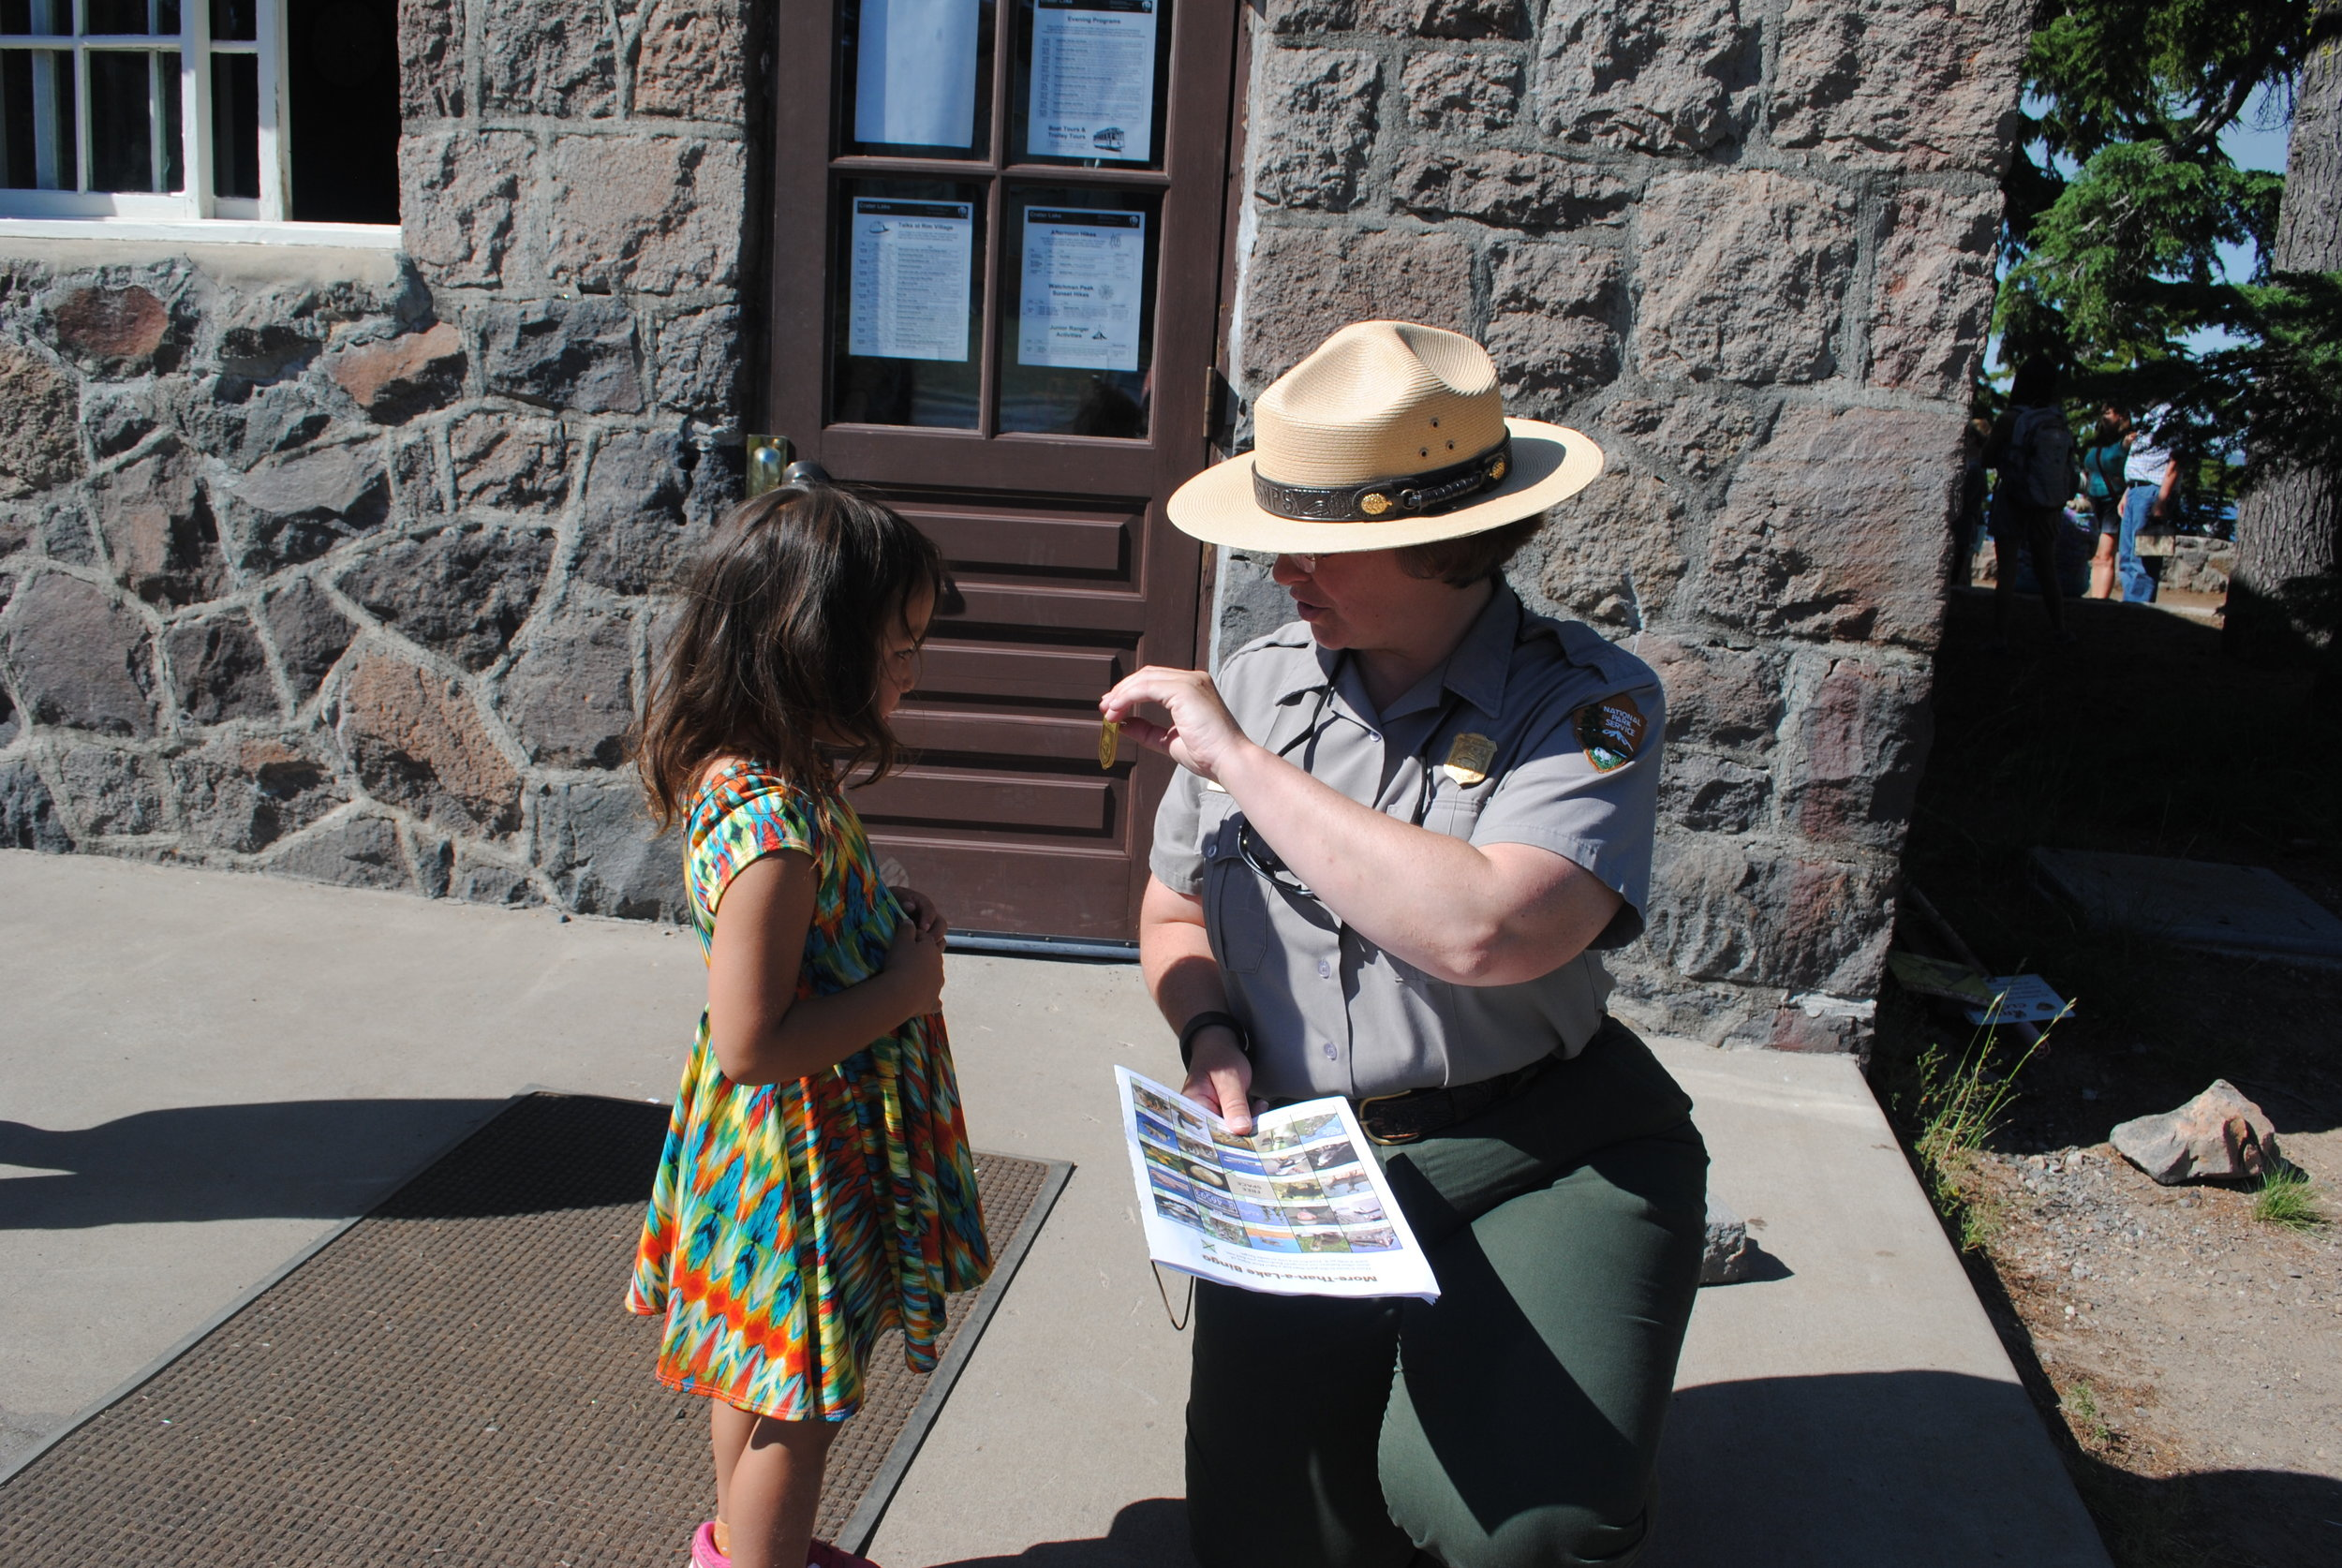 Olivia recieving here Junior Ranger badge for filling out her workbook.